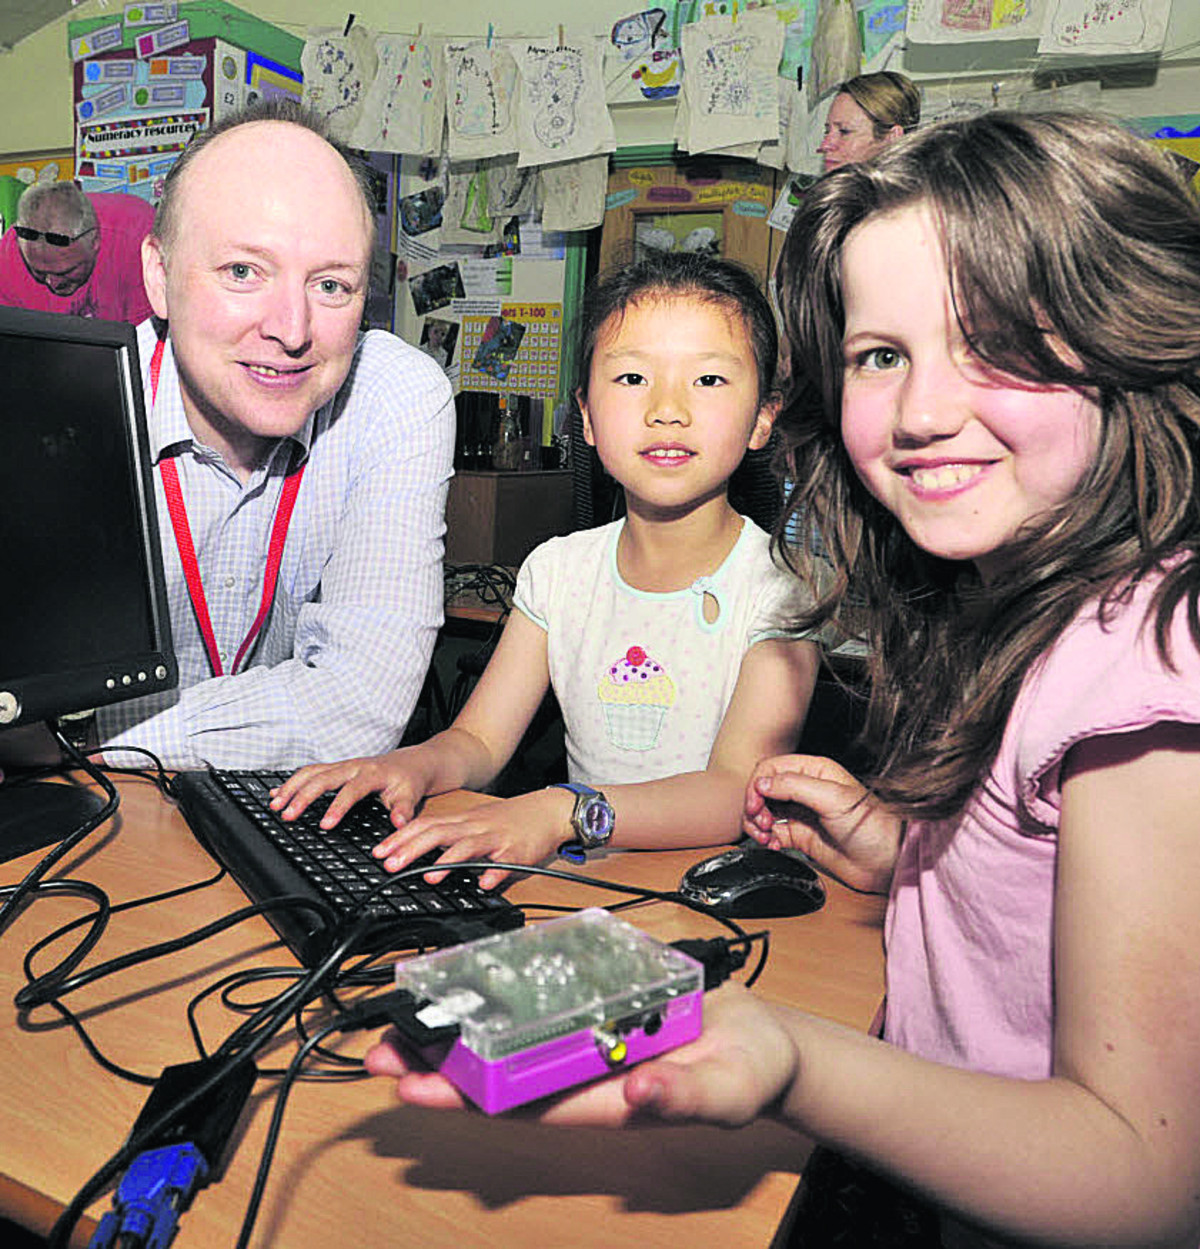 Emily Jacob and Liana Tiany enjoy the Raspberry Pi  jam session run by Alan O' Donohoe Hundreds of families enjoyed fascinating activities at The Mead CP School's community science and technology day